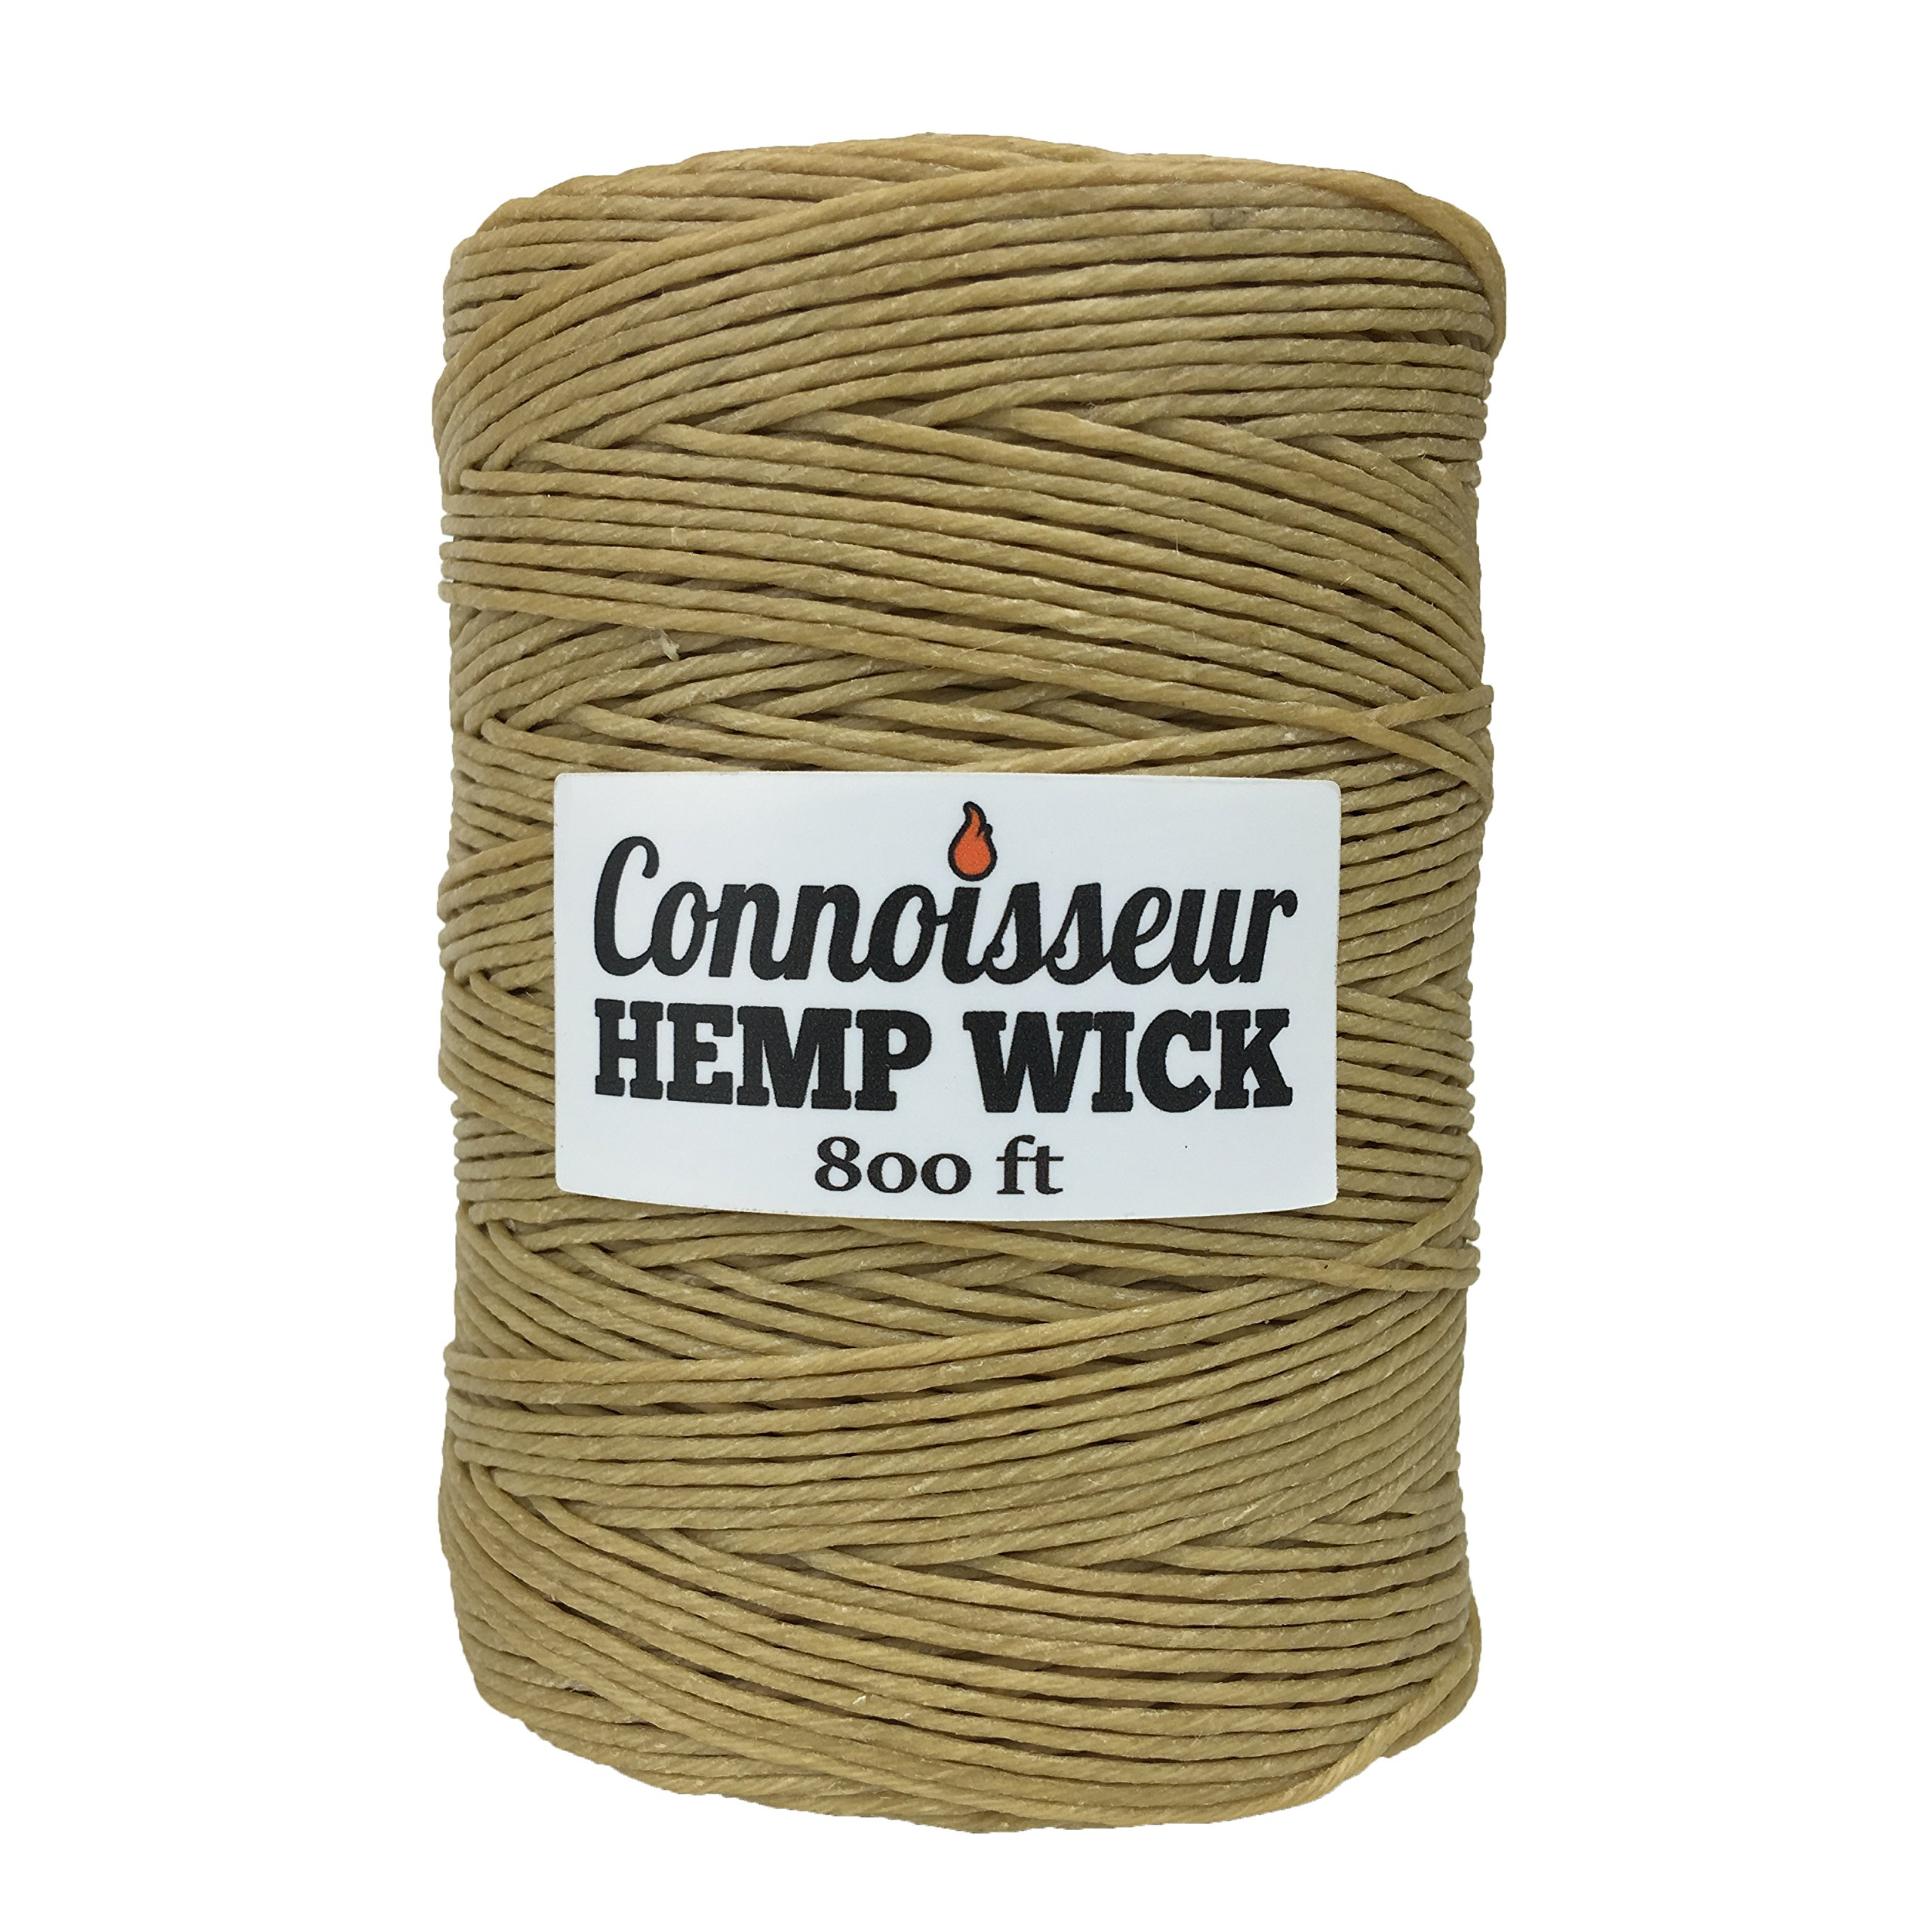 Natural Hemp Wick Spool (800 FT) Natural Beeswax Coating | Slow Burn, Long-Lasting Refill | DIY Tea Lights, Candle Making, Tapers | Standard Dispenser Use | 1.0mm